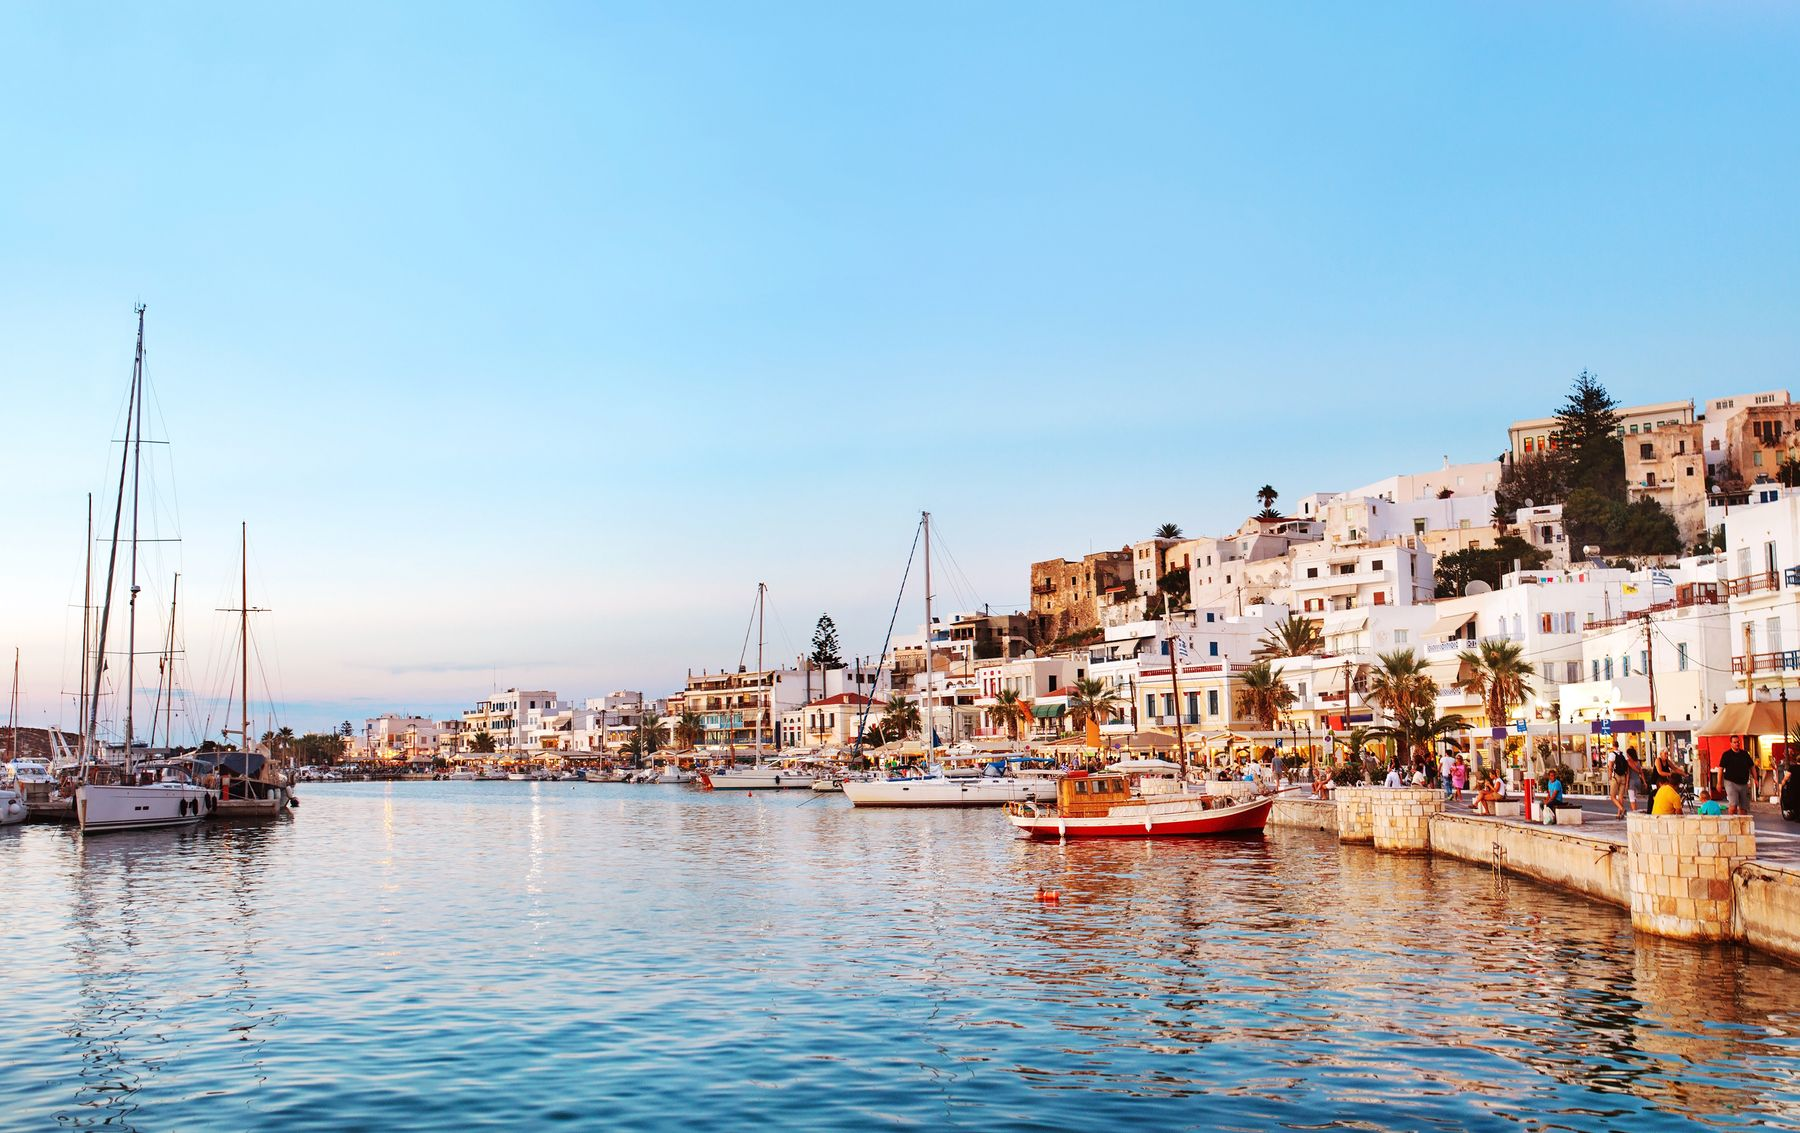 You can currently travel to and around Greece by boat